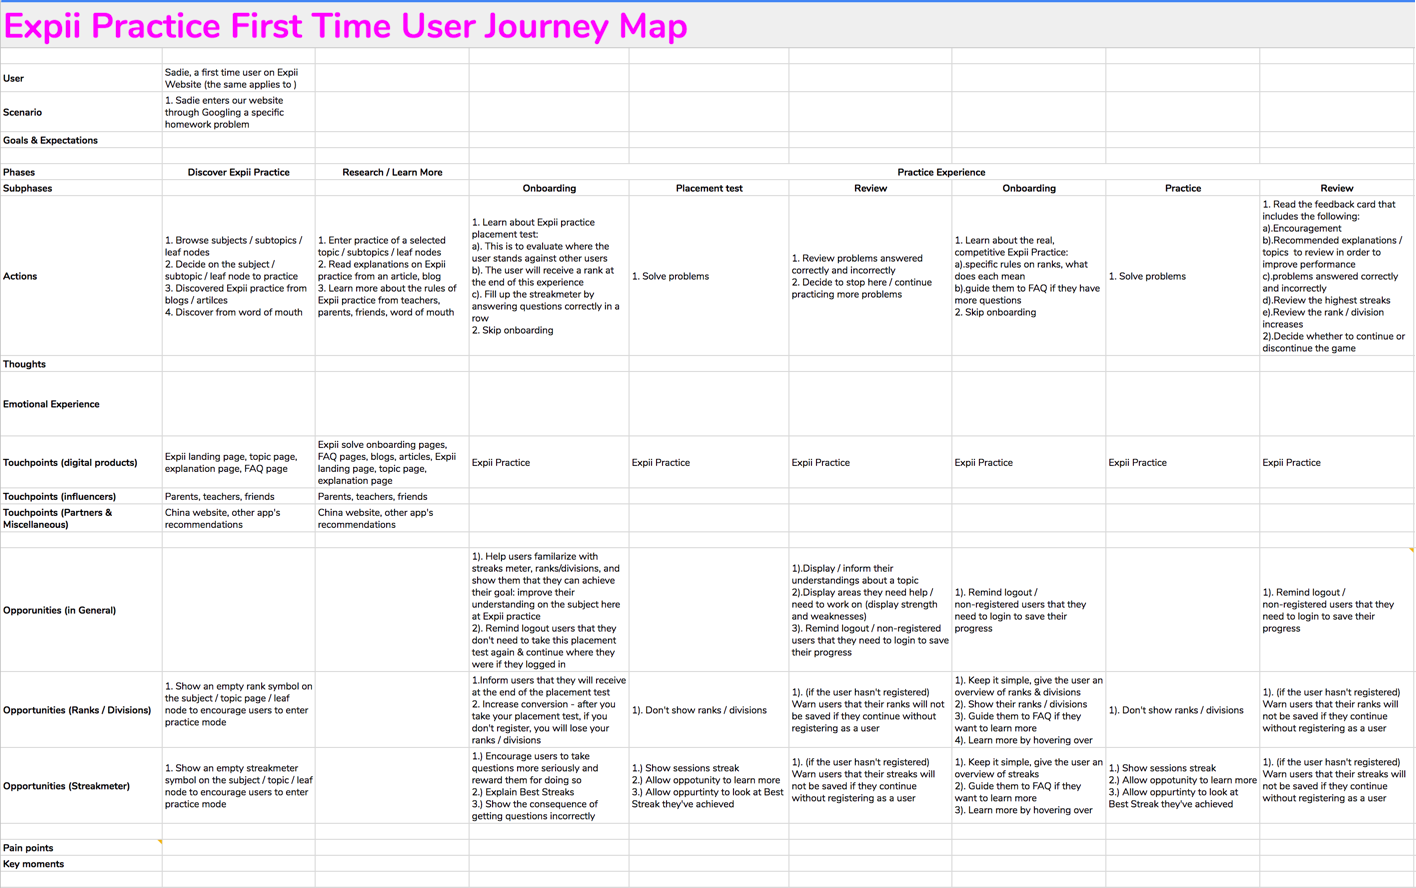 Customer Journey Map (First time user)